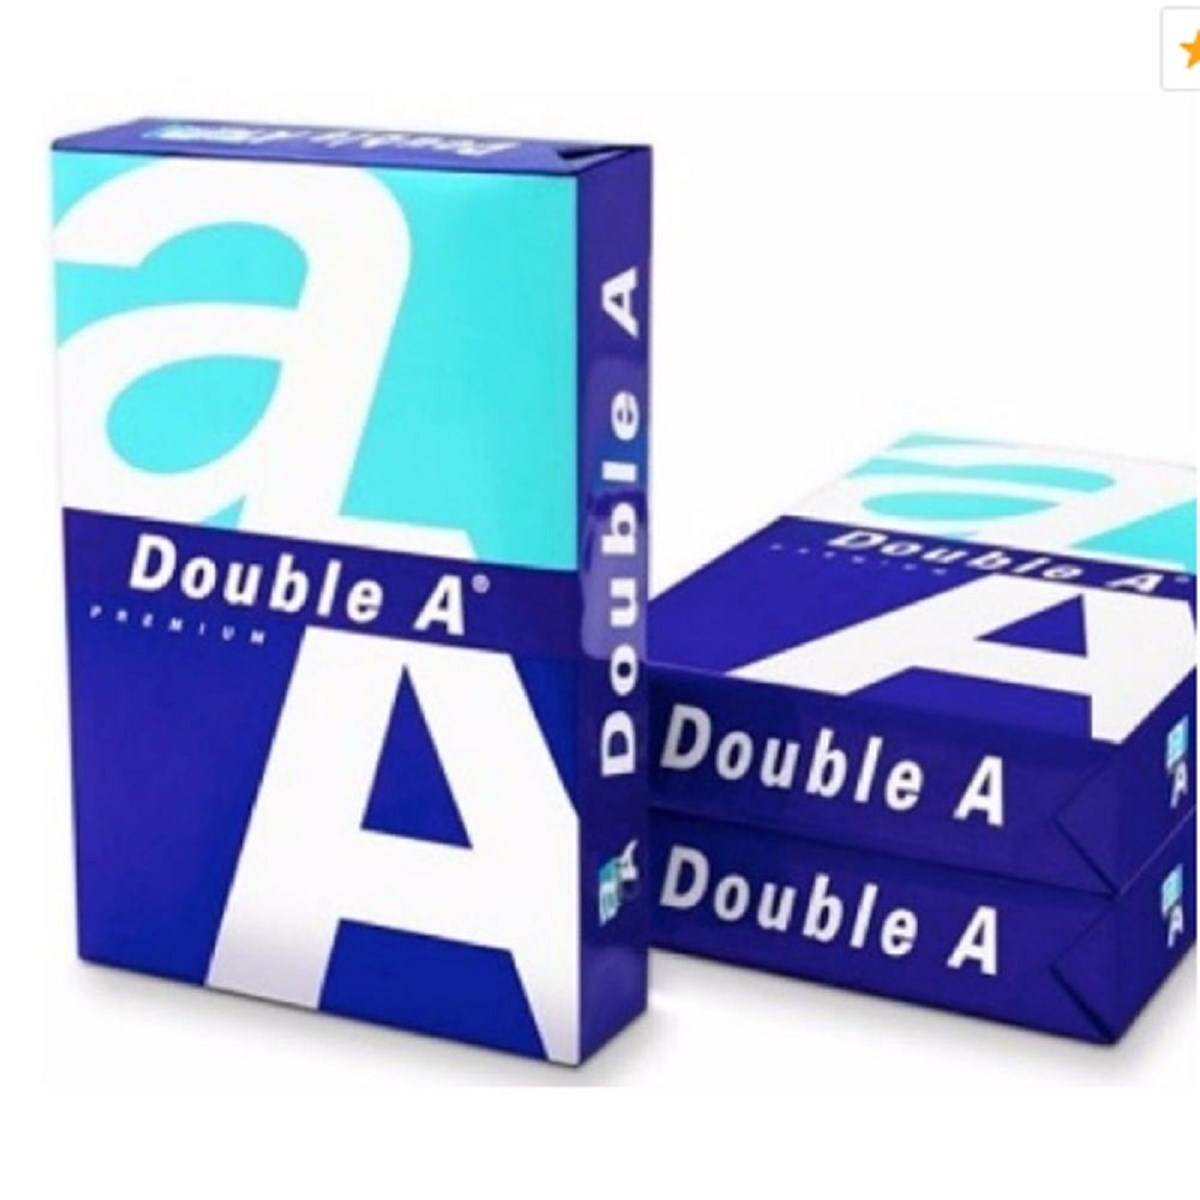 Double A Copy Paper A4 70gsm75gsm80gsm